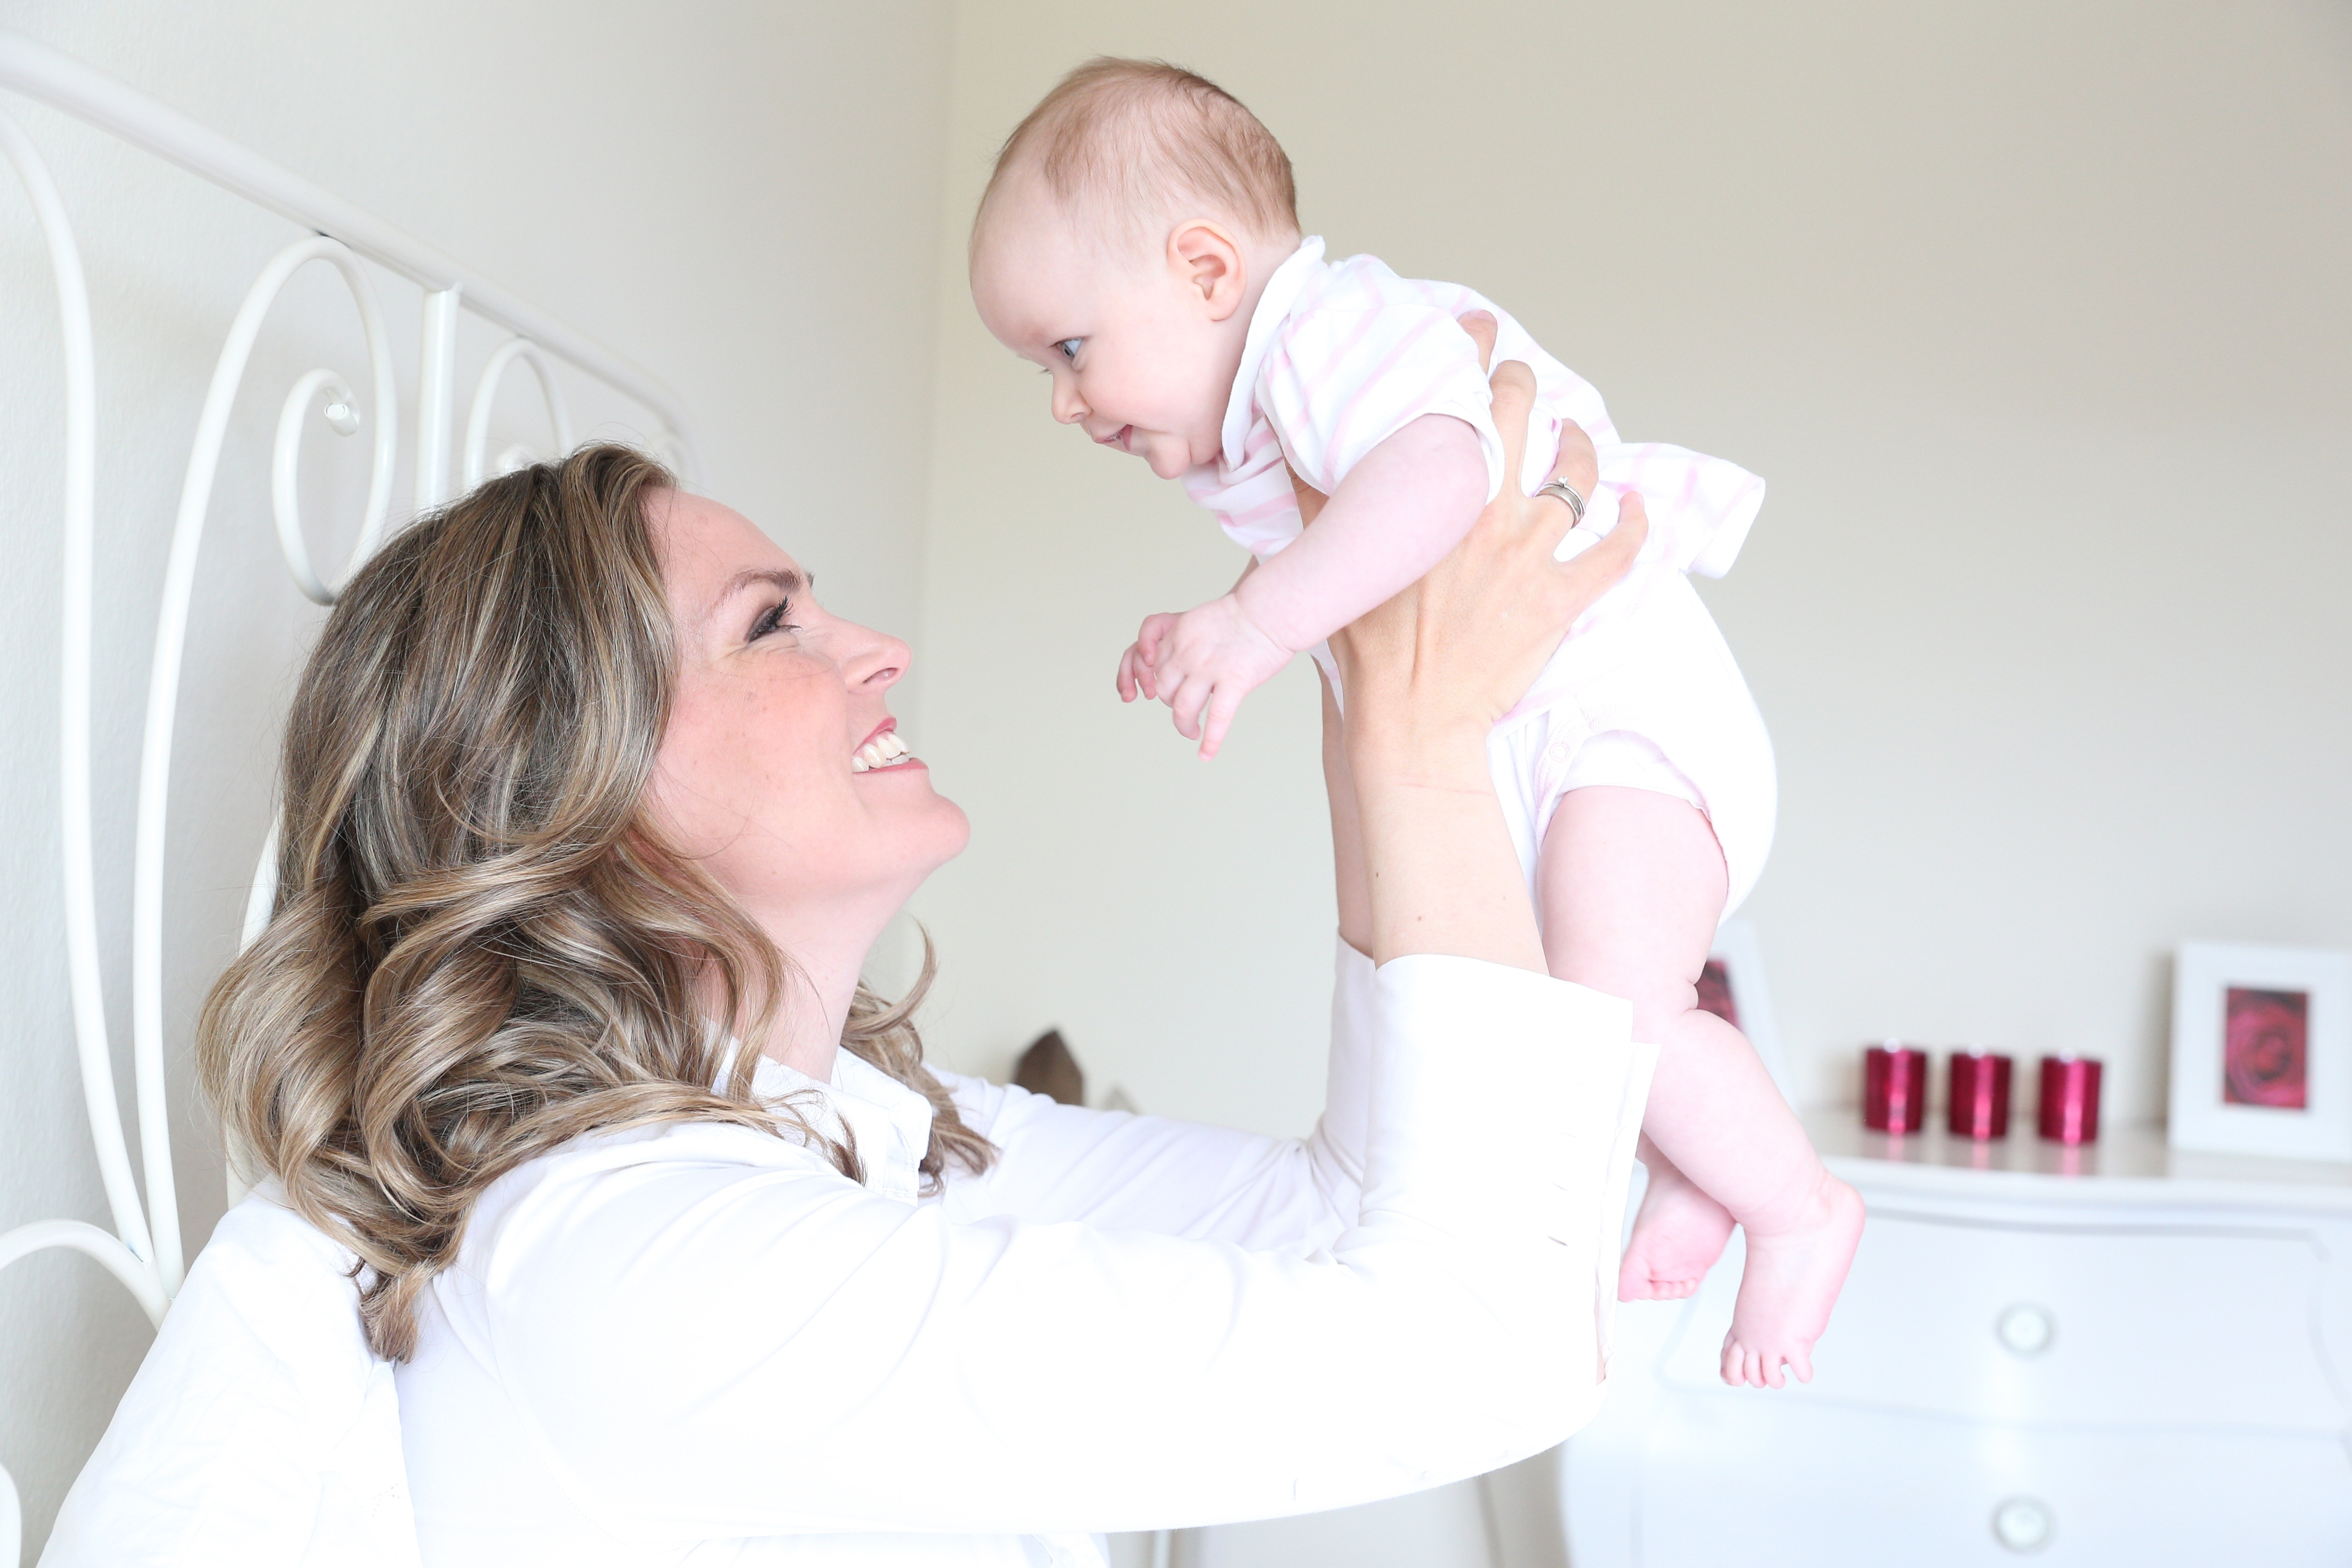 Julia Scharf With Her Baby Daughter Jonna Photo Session In Munich